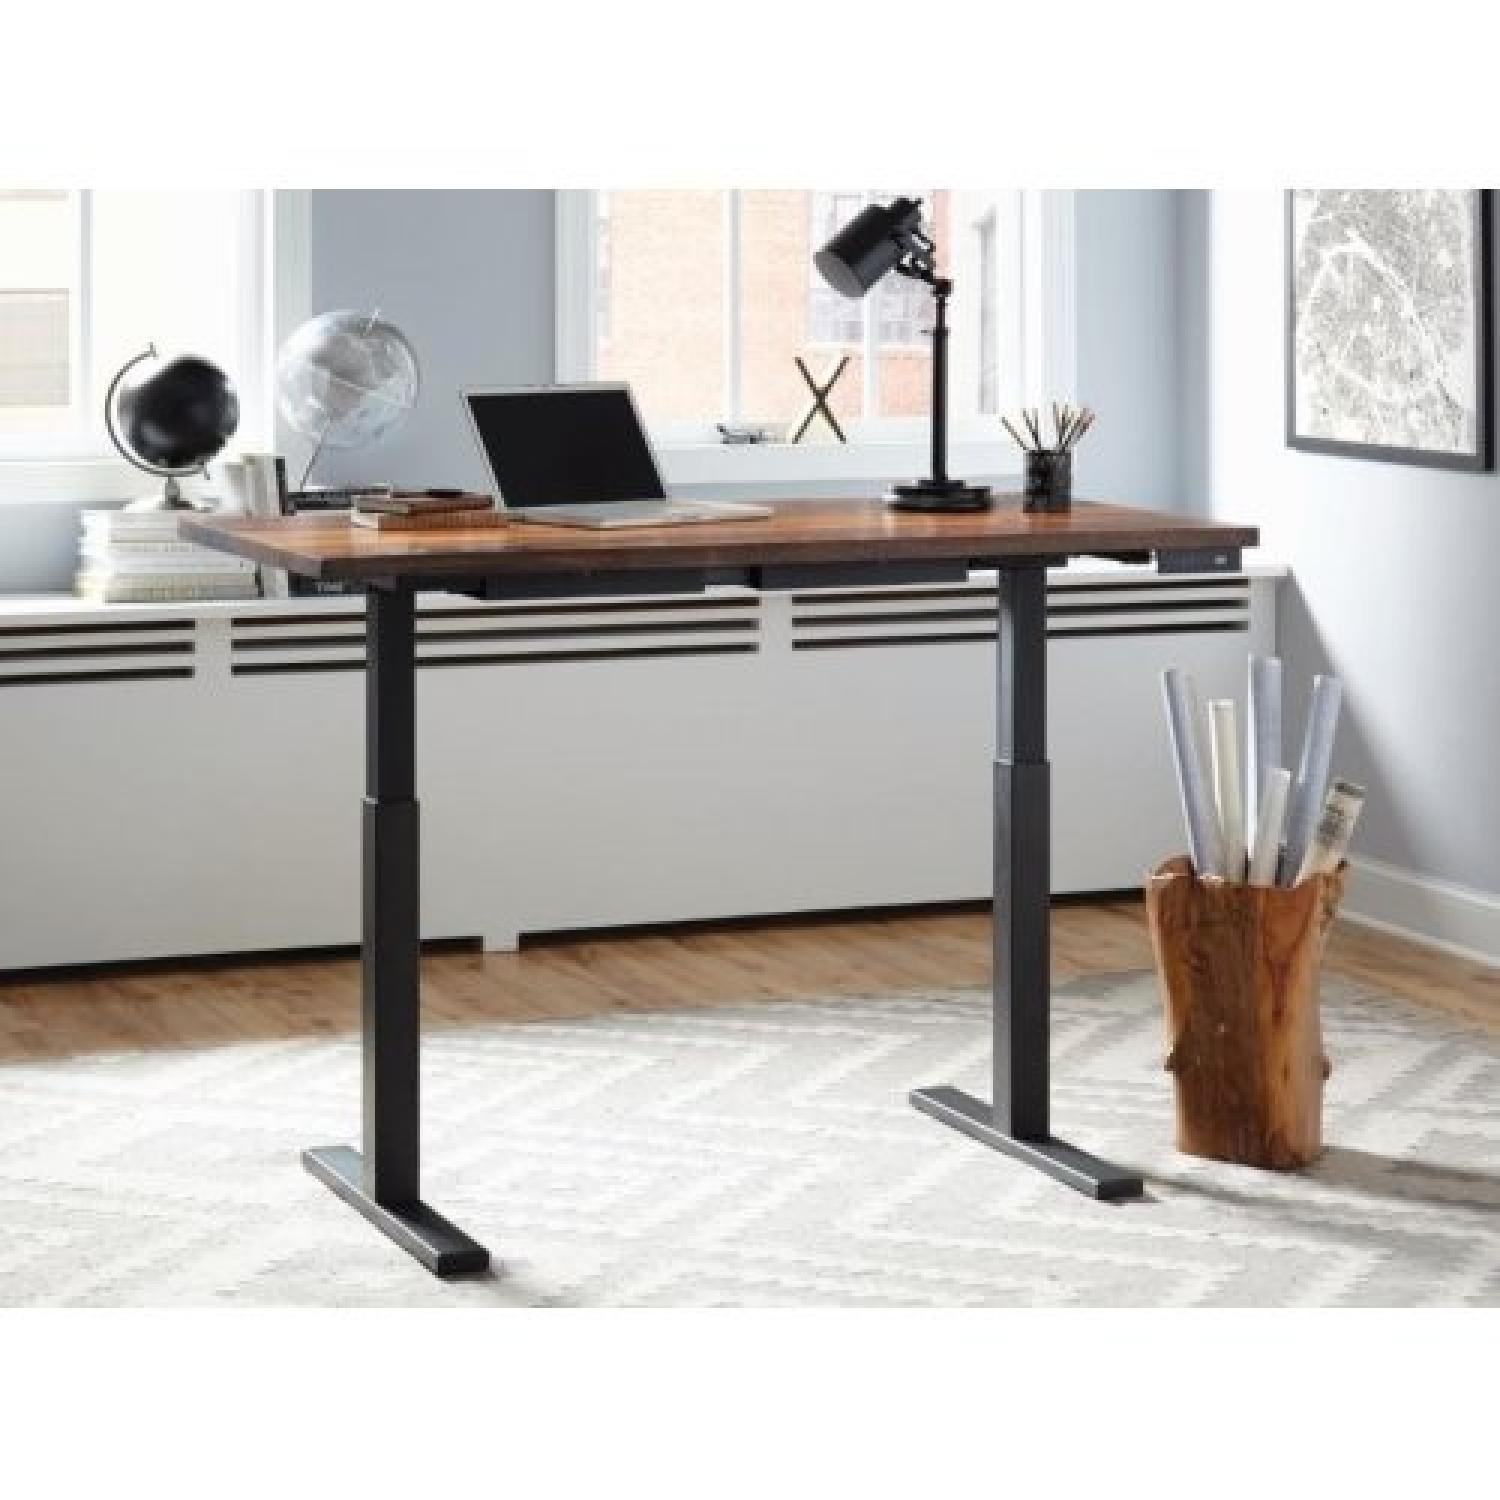 Motorized Height-Adjustable Wood Standing Desk w/ Metal Base-1